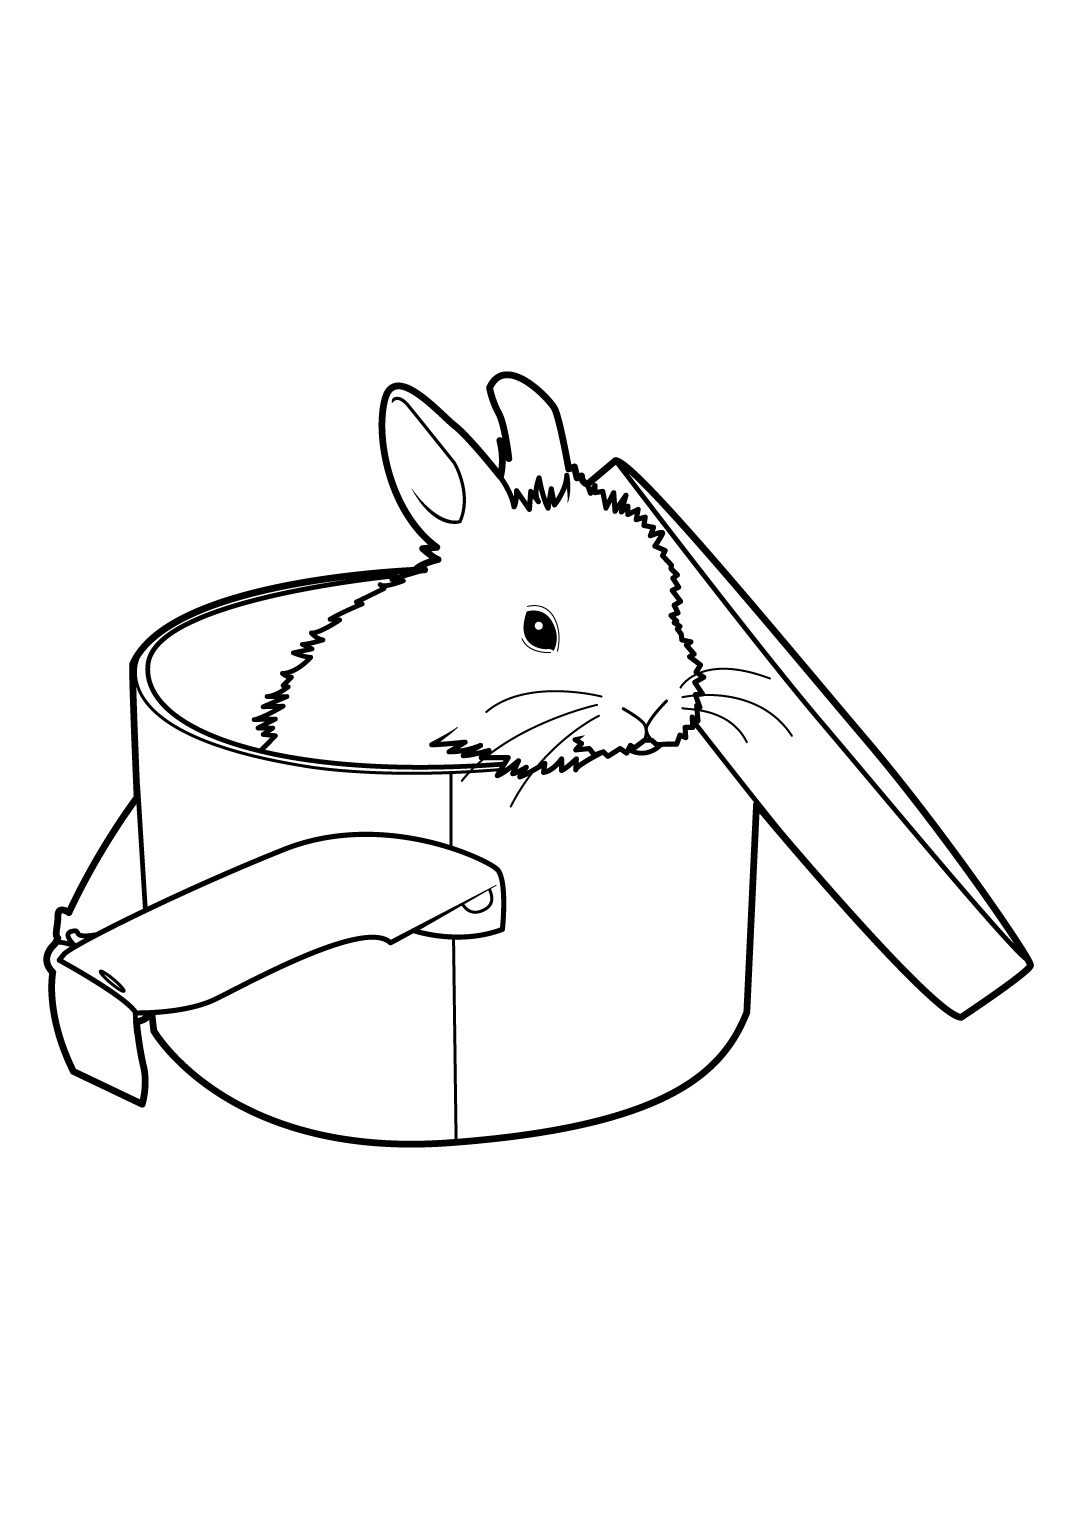 33 dessins de coloriage lapin cr tin imprimer - Lapin a colorier ...